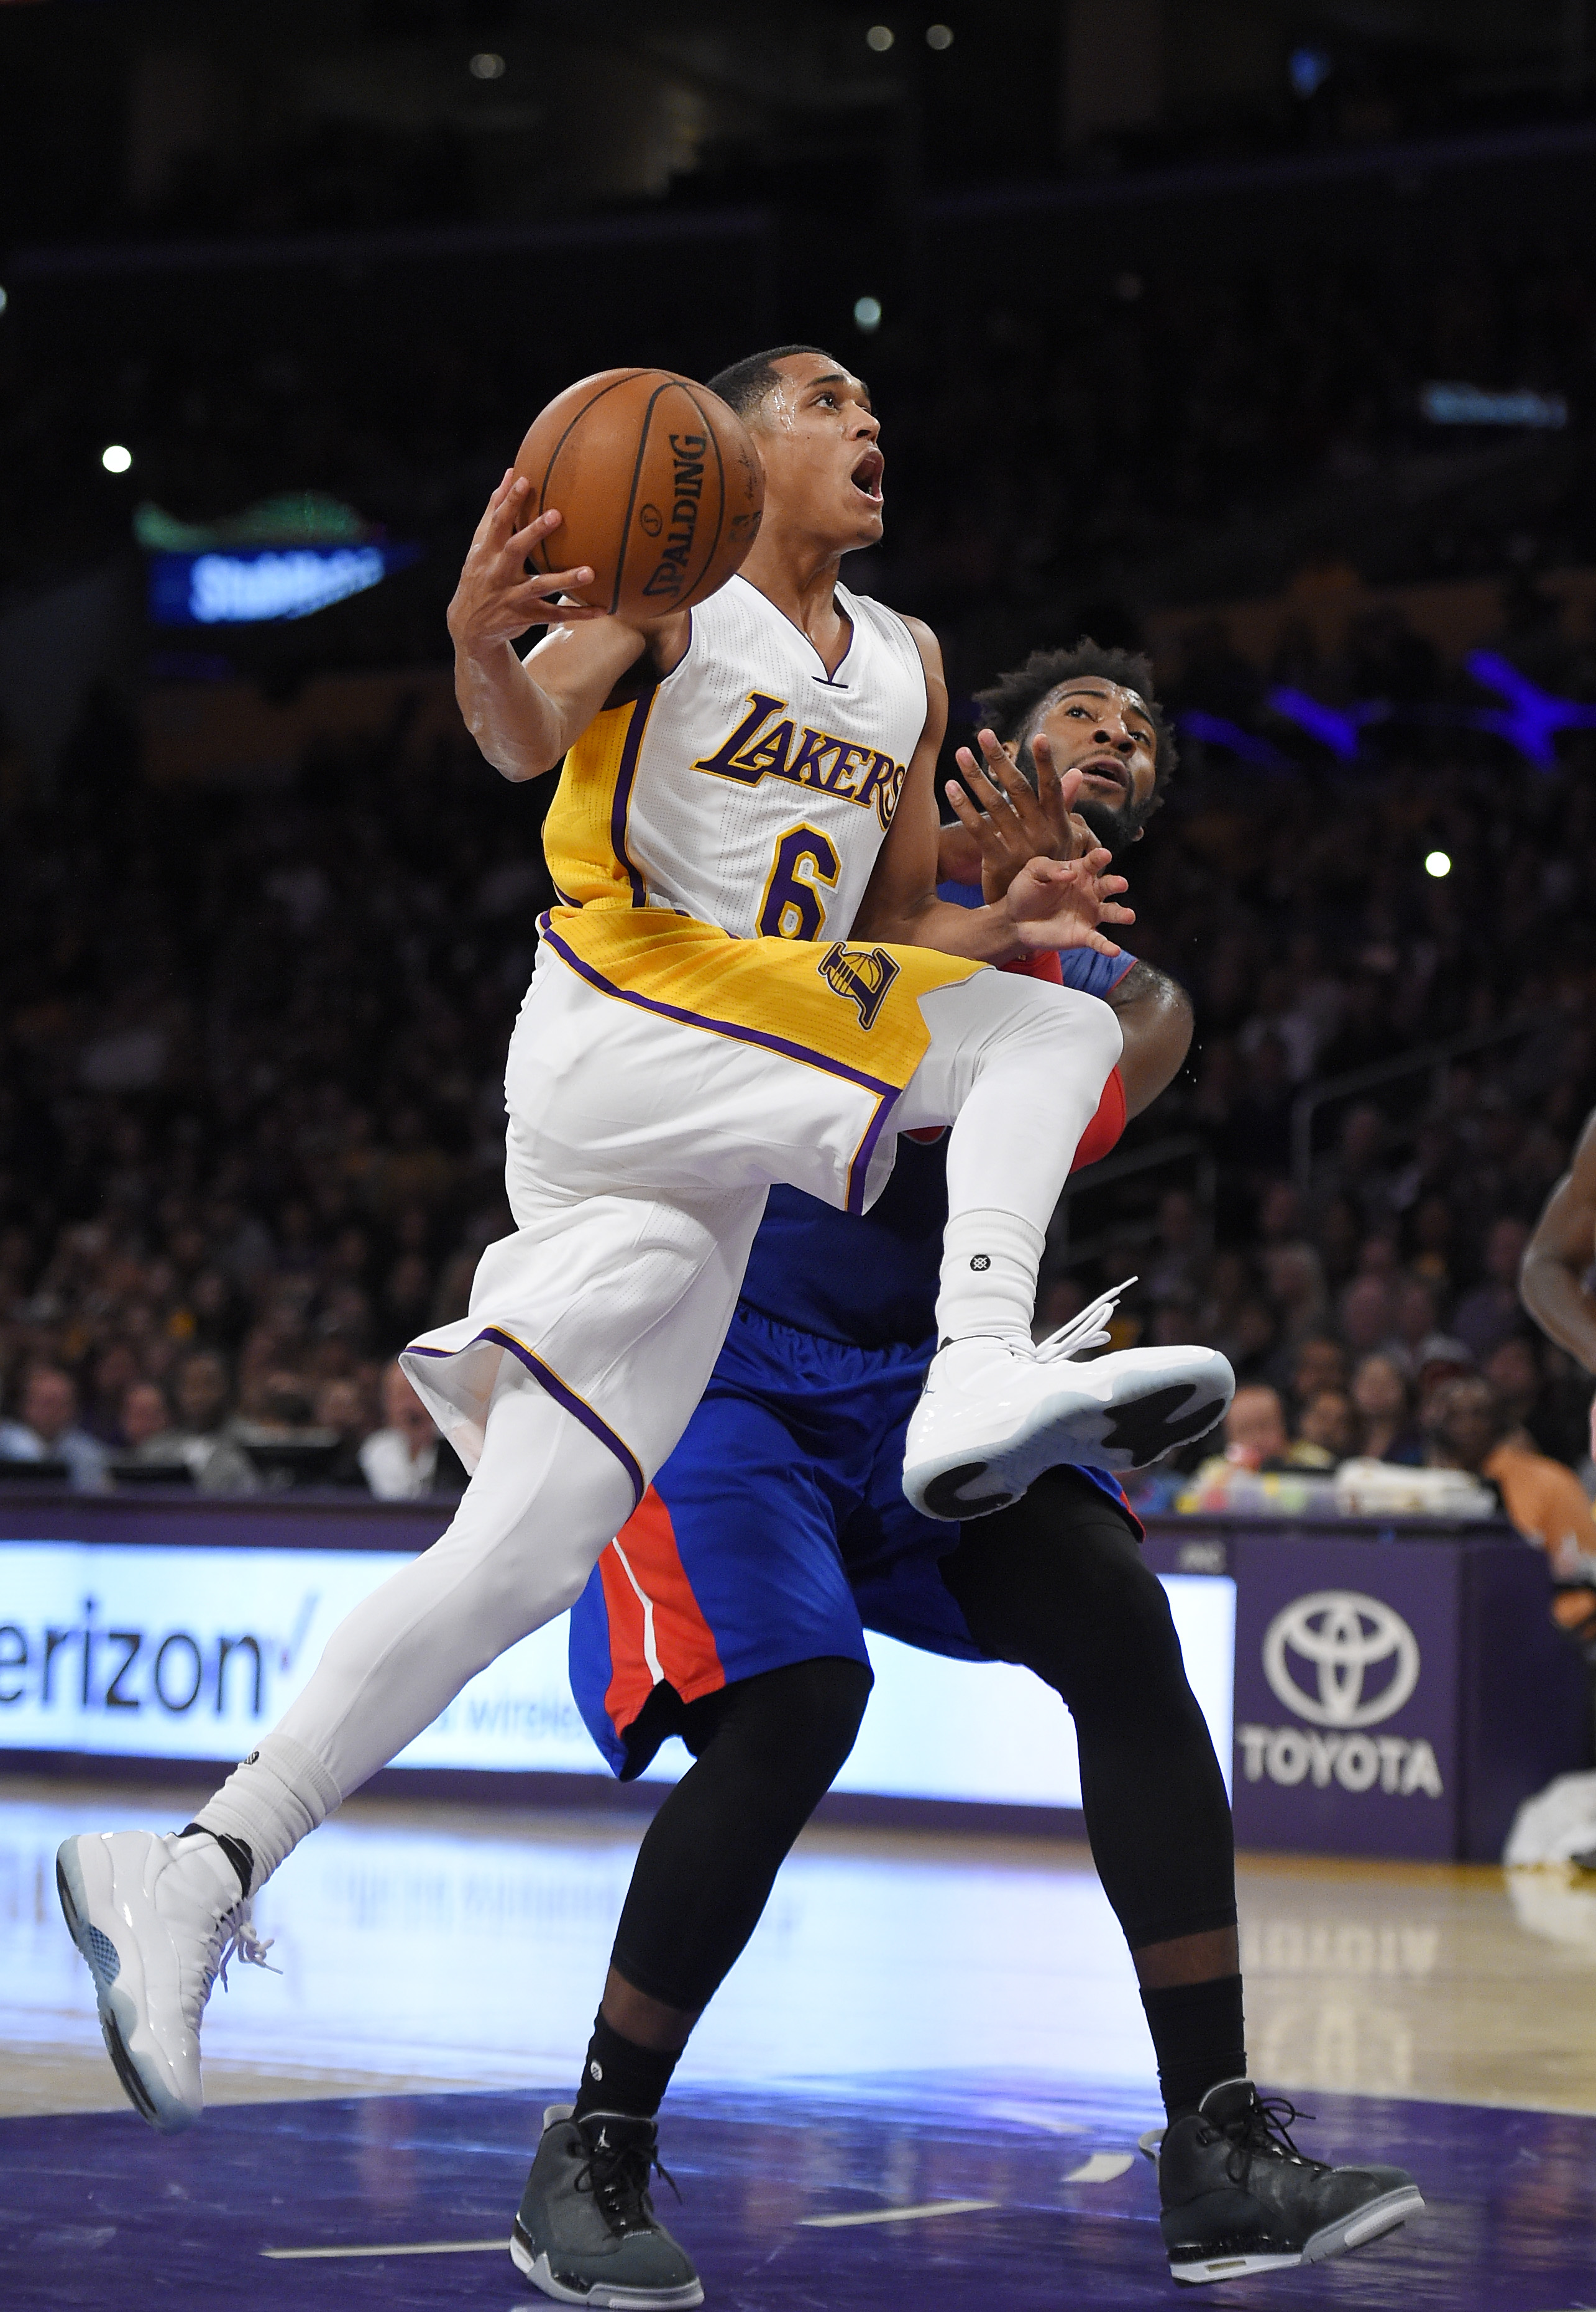 Los Angeles Lakers guard Jordan Clarkson, left, goes up for a shot as Detroit Pistons center Andre Drummond defends during the second half of an NBA basketball game, Sunday, Nov. 15, 2015, in Los Angeles.  The Lakers won 97-85. (AP Photo/Mark J. Terrill)